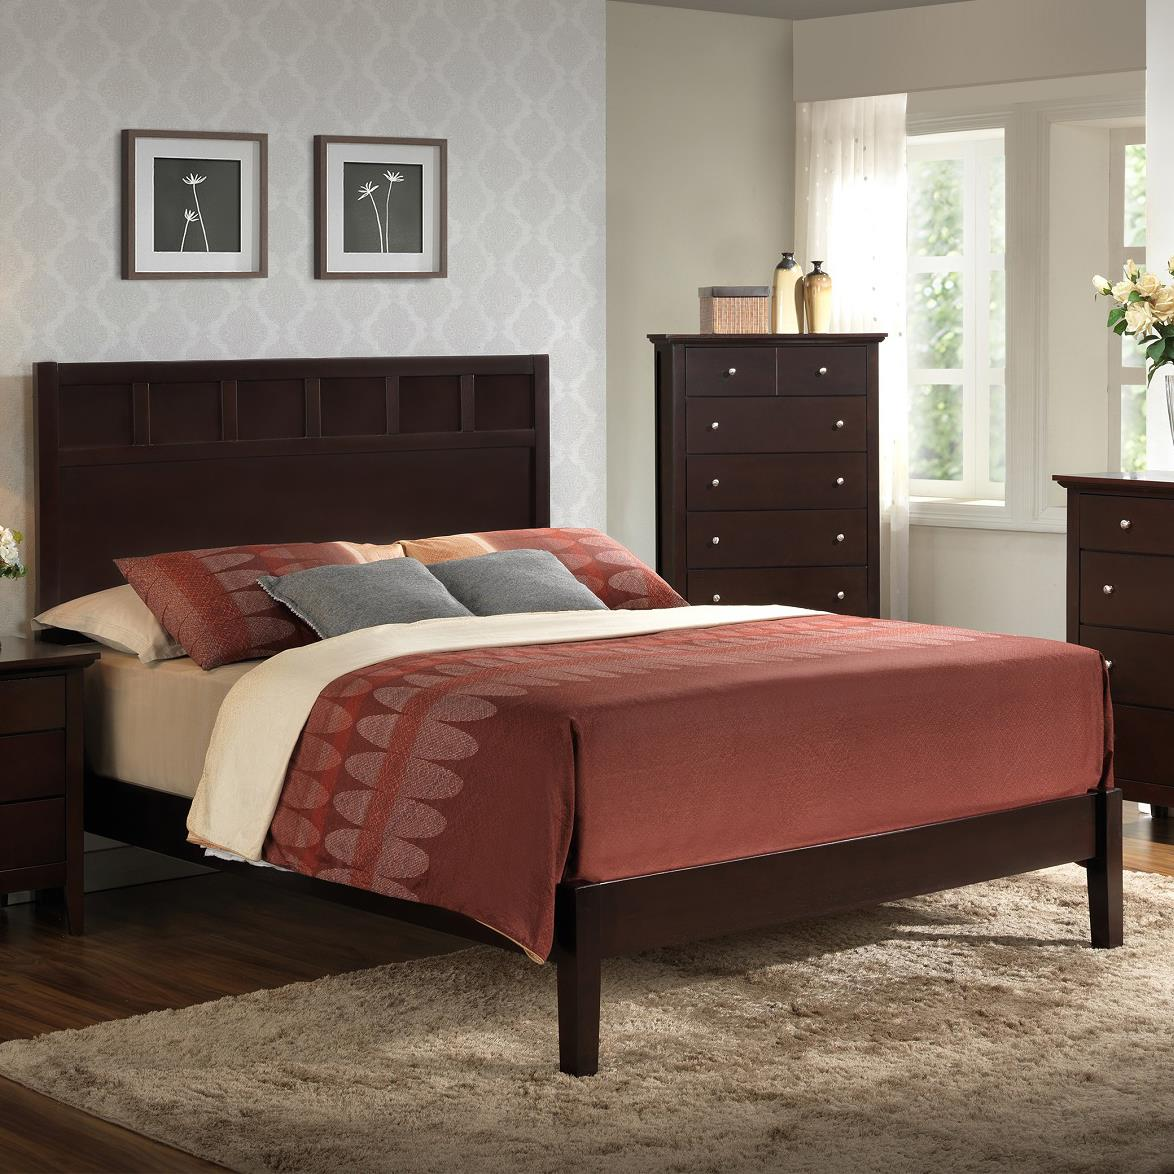 Lifestyle Harper King Panel Bed - Item Number: C5125A-G49+BXN